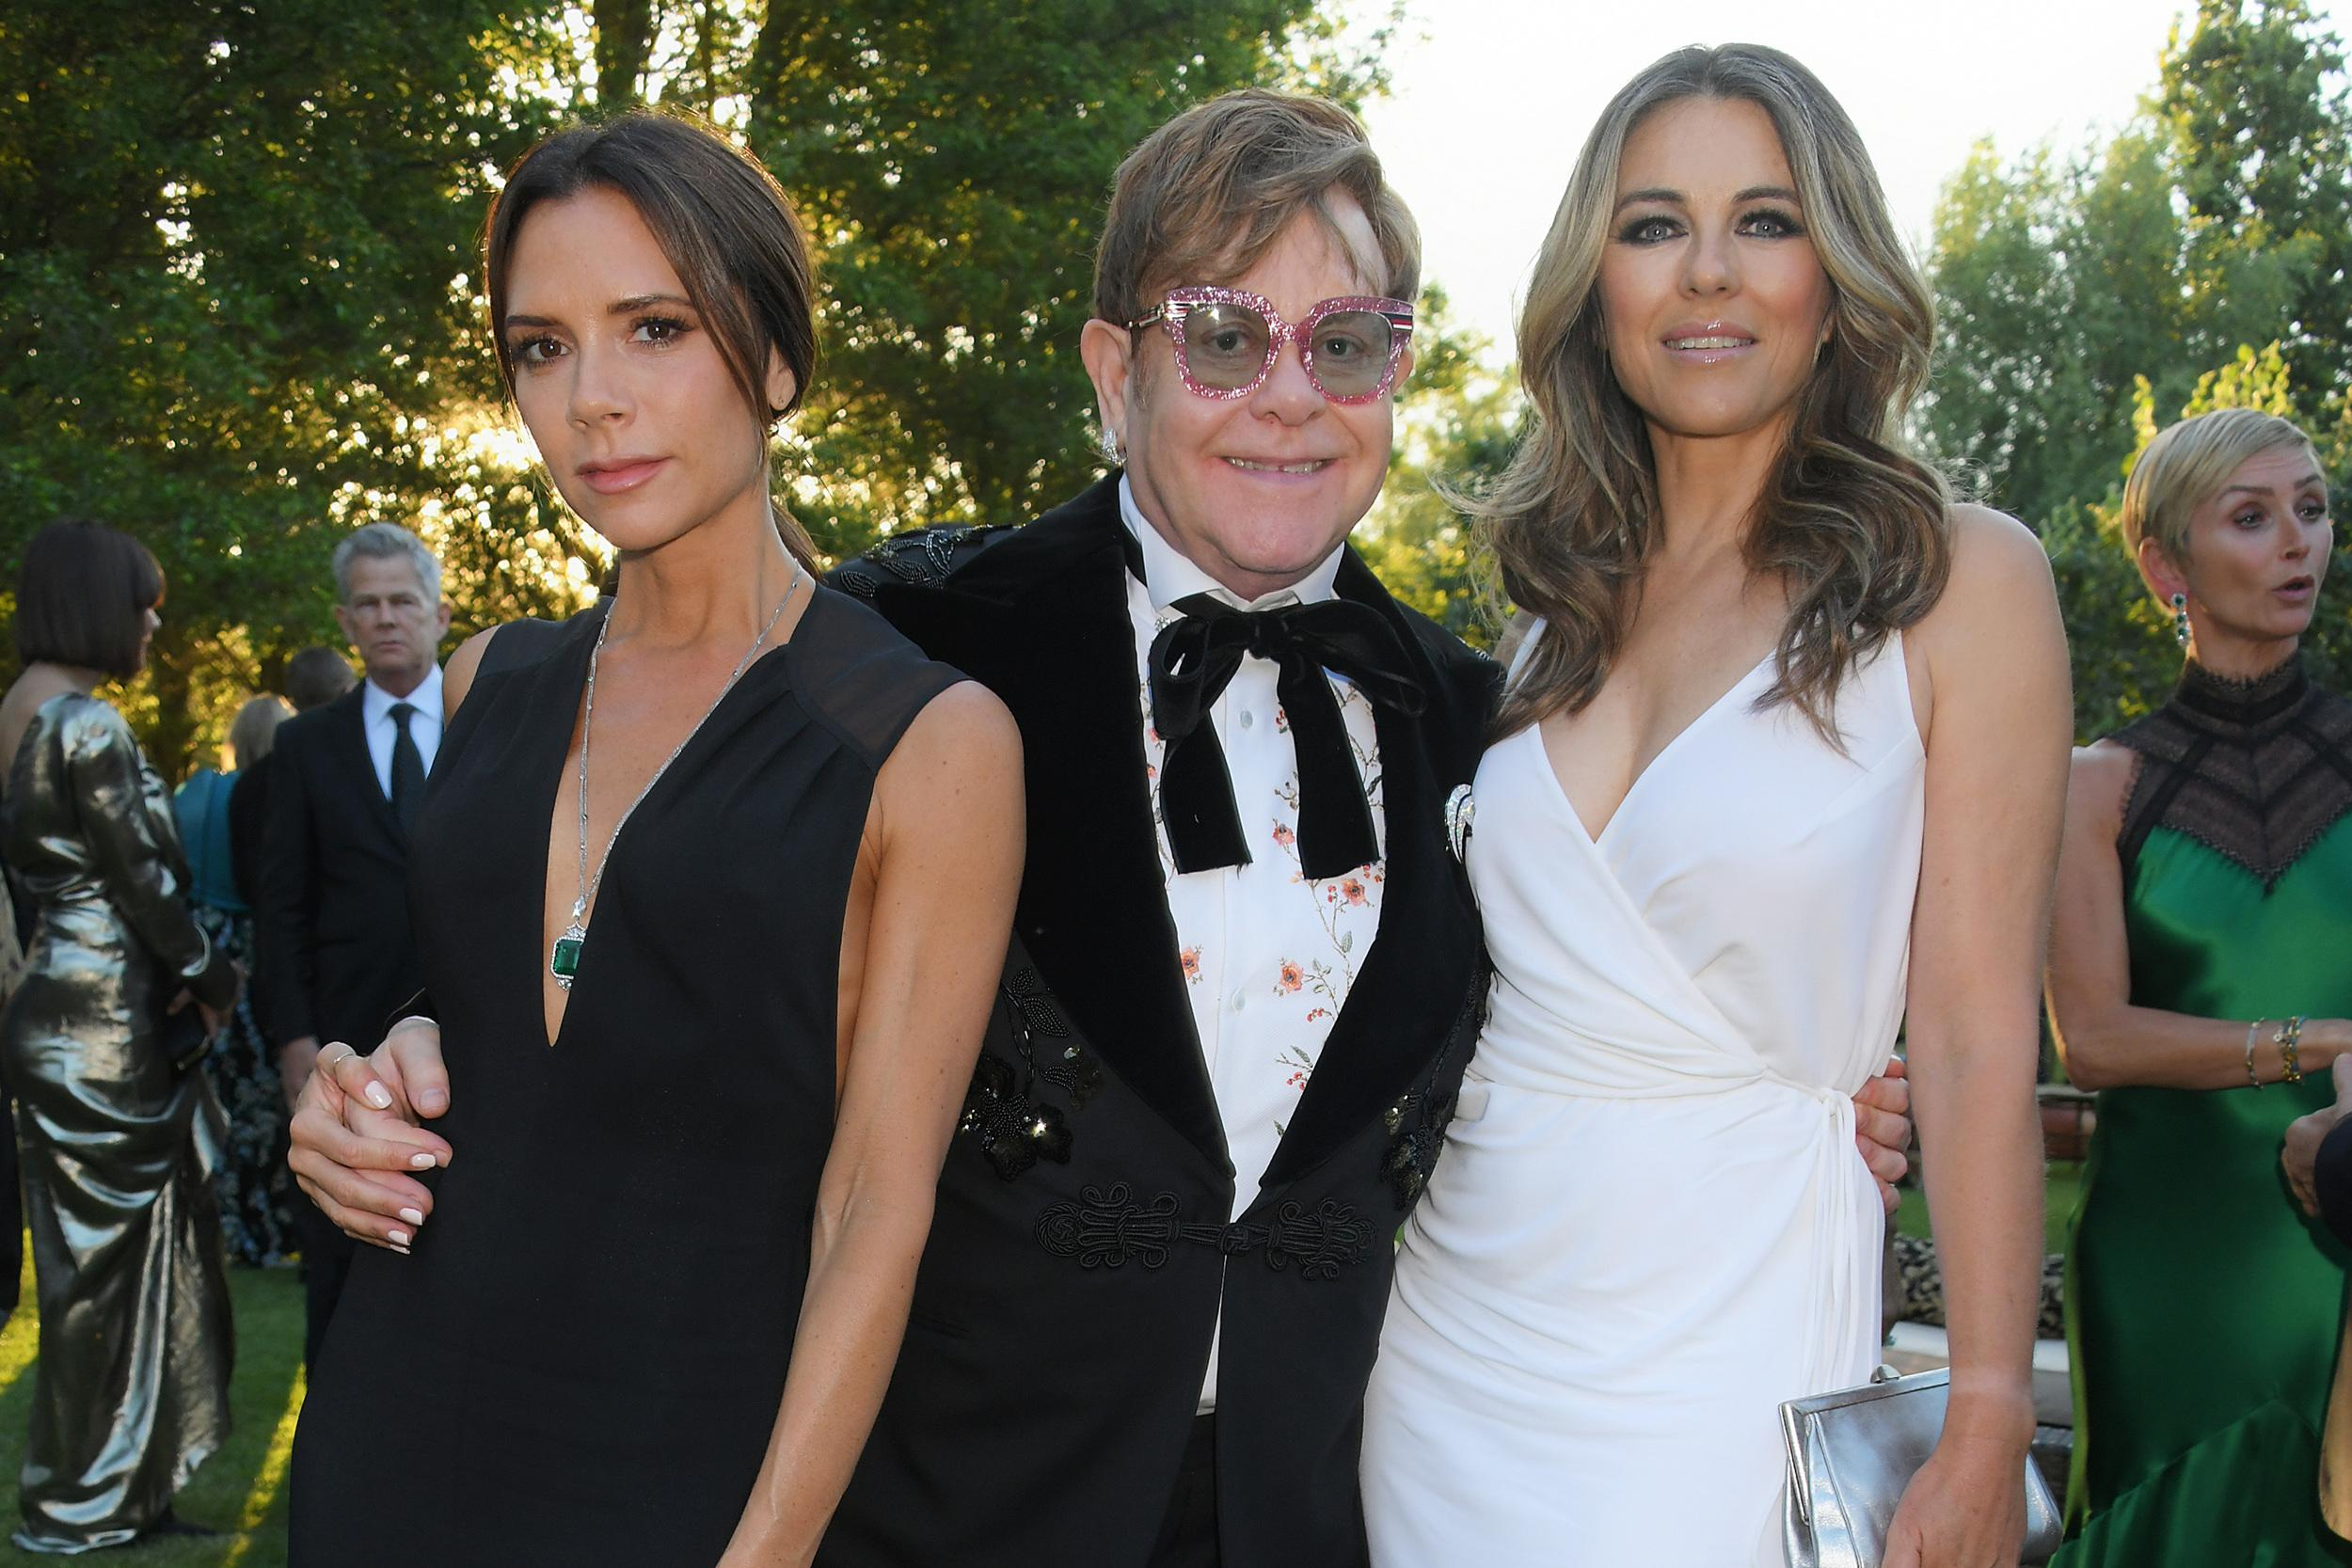 WINDSOR, ENGLAND - JUNE 27:  (L to R) Victoria Beckham, Sir Elton John and Elizabeth Hurley attend the Argento Ball for the Elton John AIDS Foundation in association with BVLGARI & Bob and Tamar Manoukian on June 27, 2018 in Windsor, England.  (Photo by David M. Benett/Dave Benett/Getty Images for BVLGARI and EJAF)